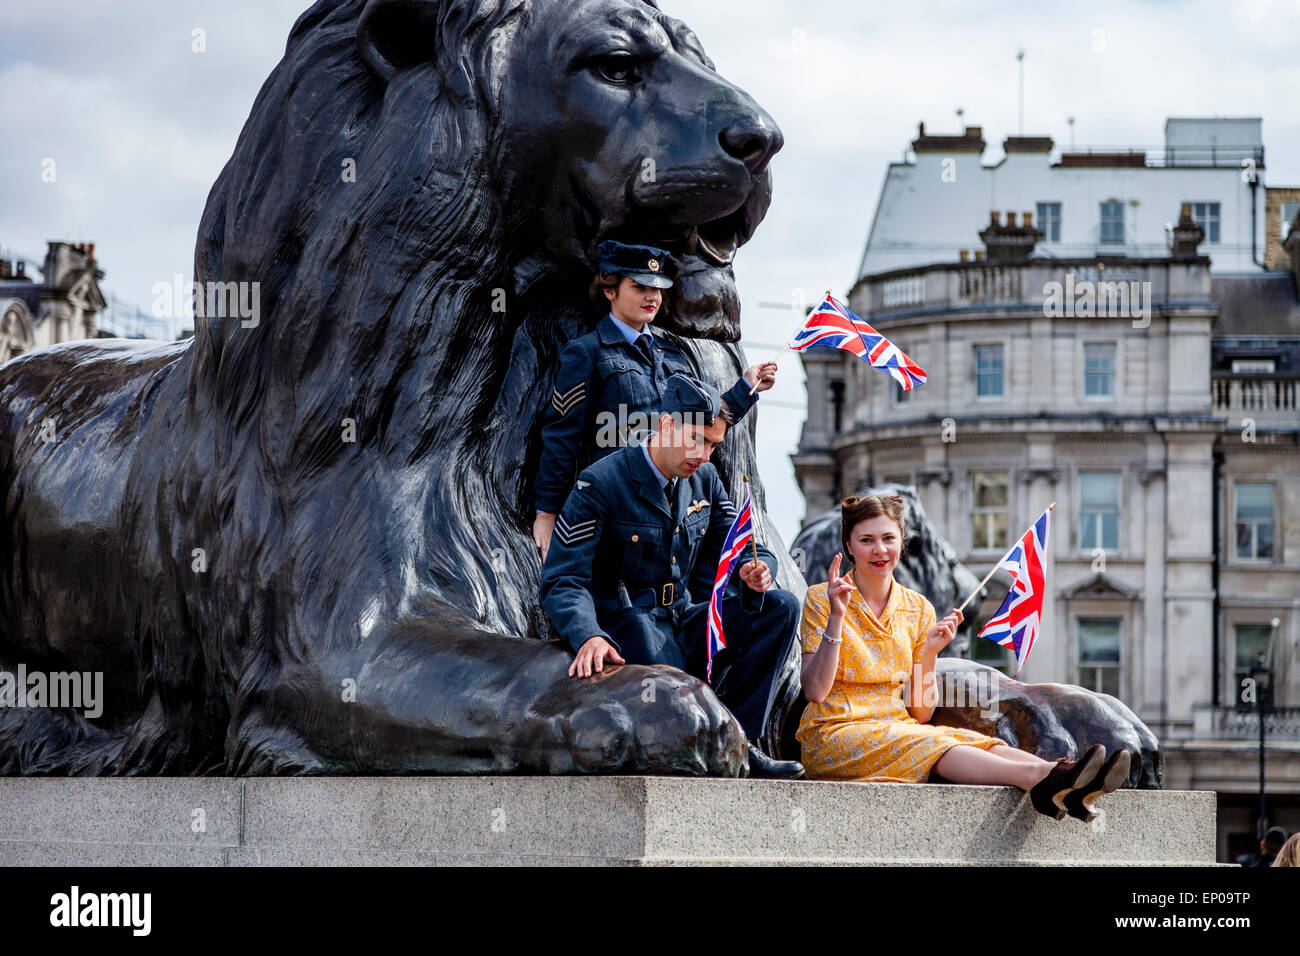 A Group Of People Dressed In 1940's Period Clothing Wave Union Flags In Trafalgar Square, London, England - Stock Image